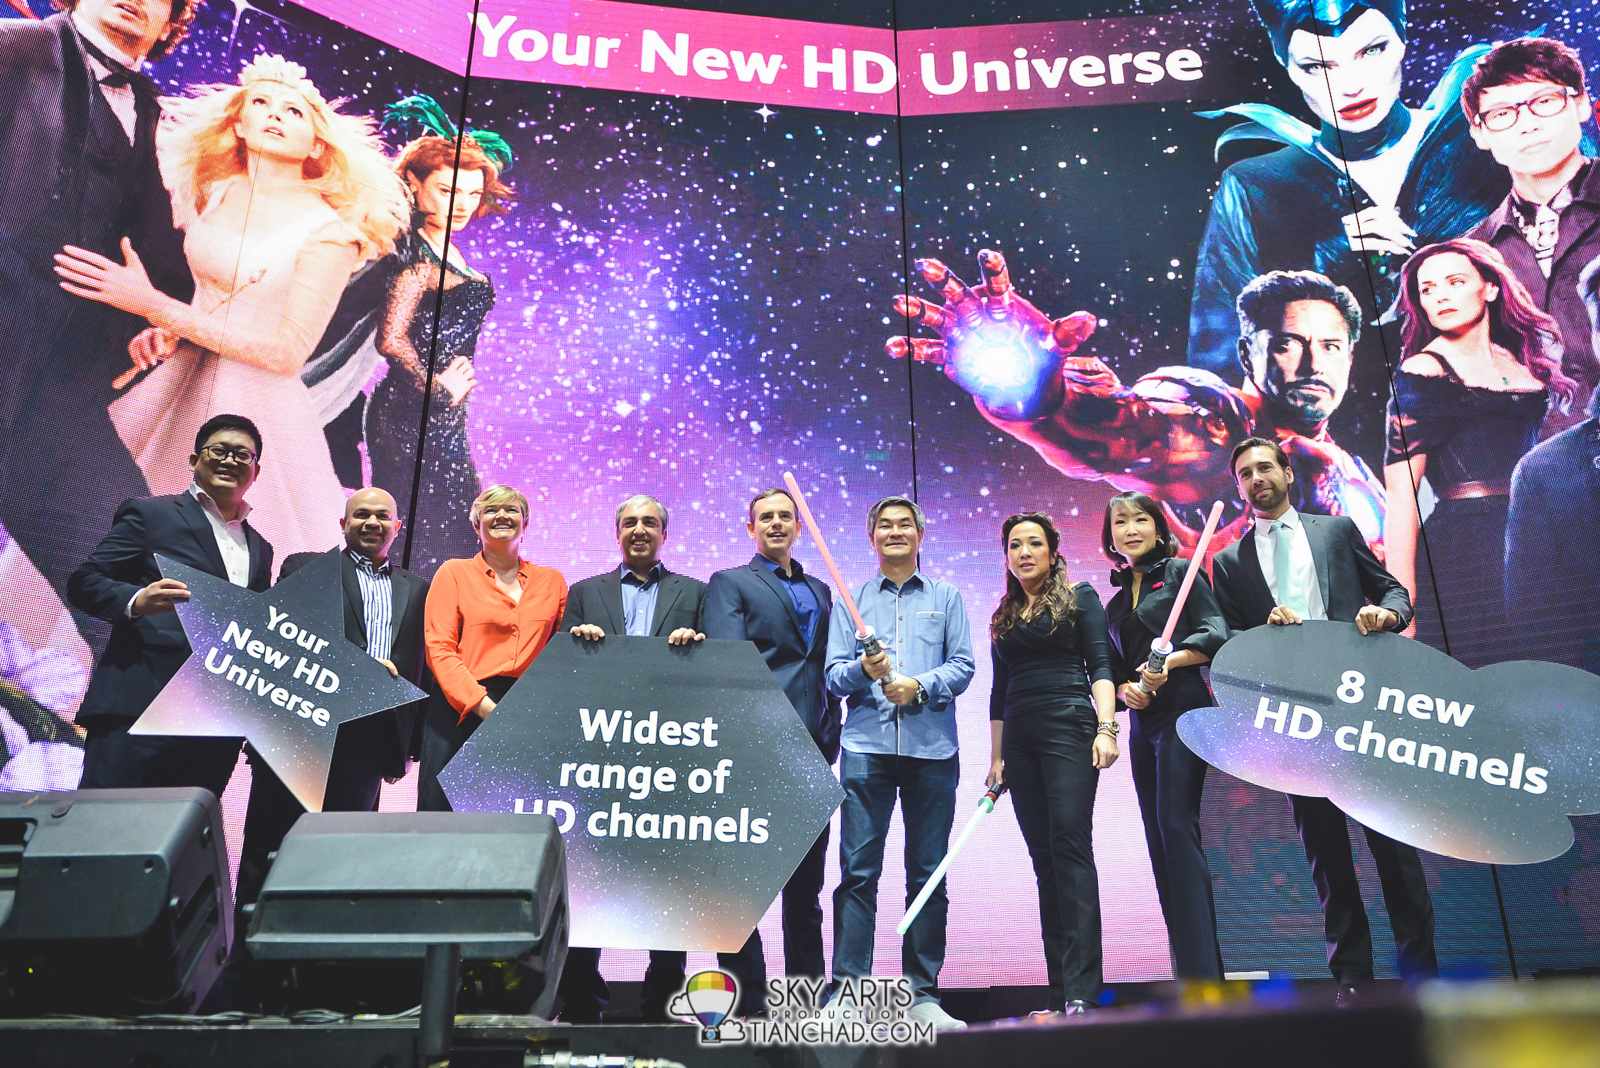 10 New Channels on Astro now!! - 8 HD Channels and 2 SD Channels